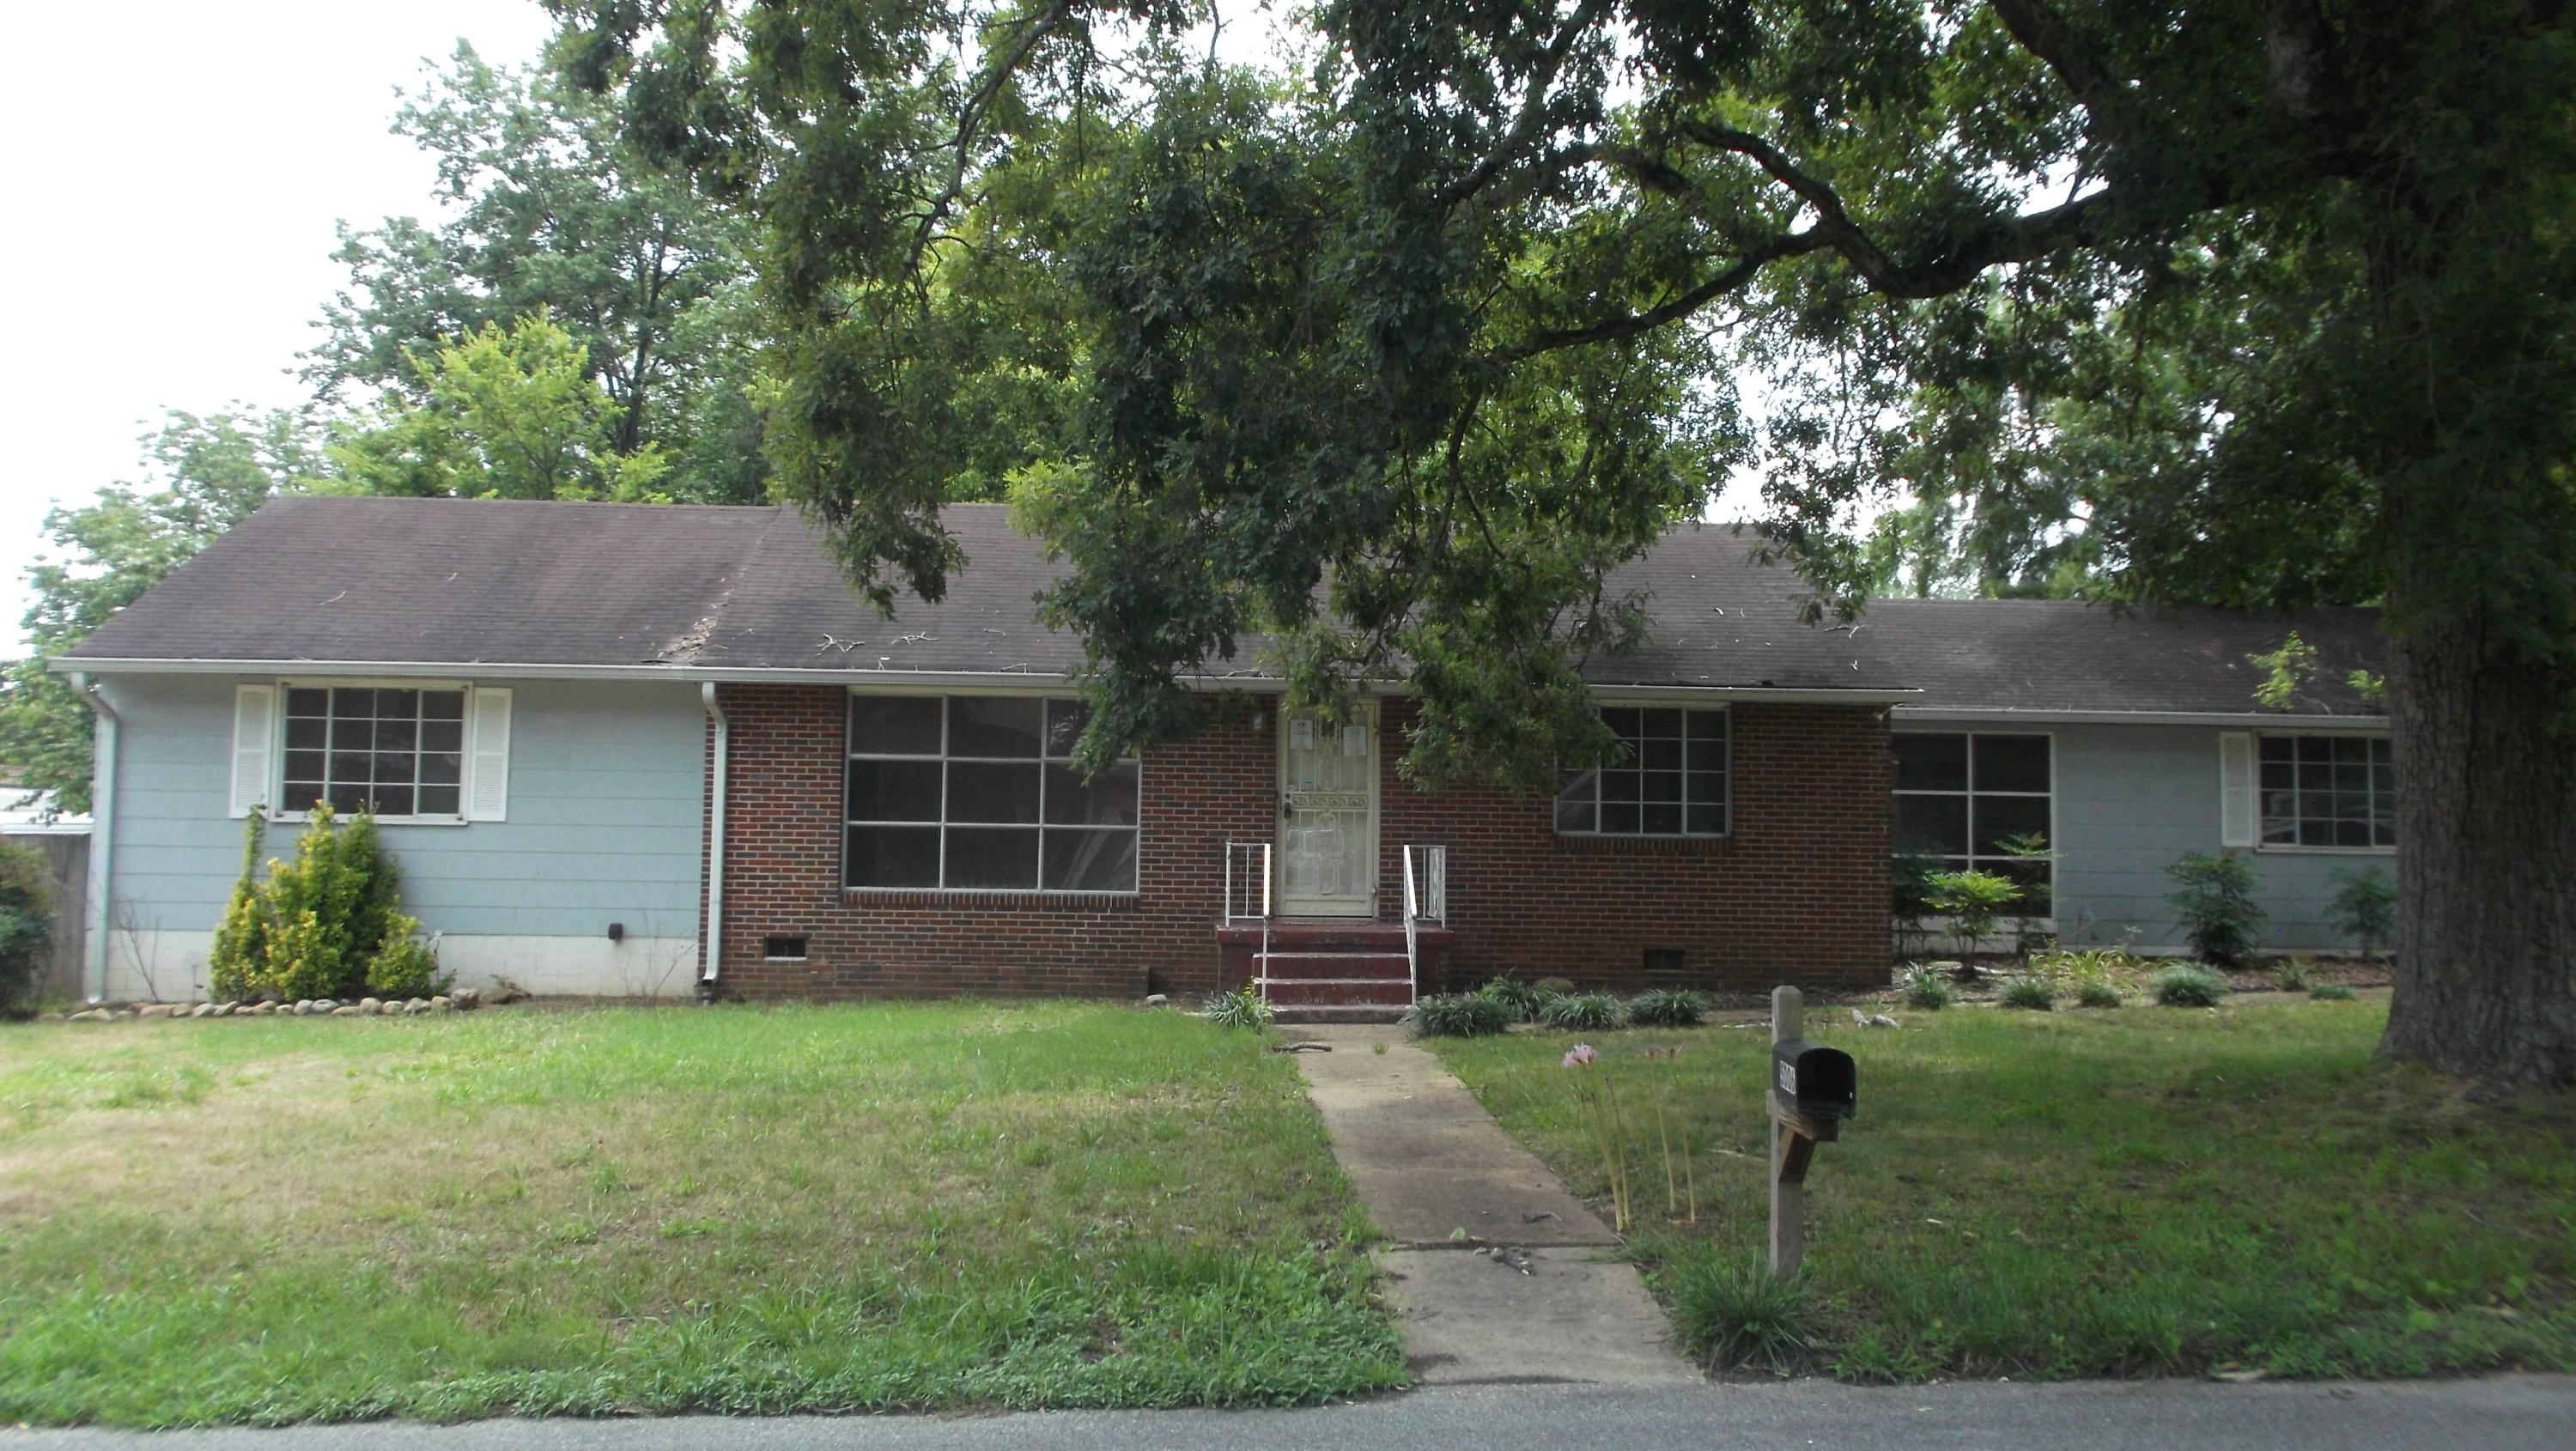 5006 Newport Dr, Chattanooga, Tennessee